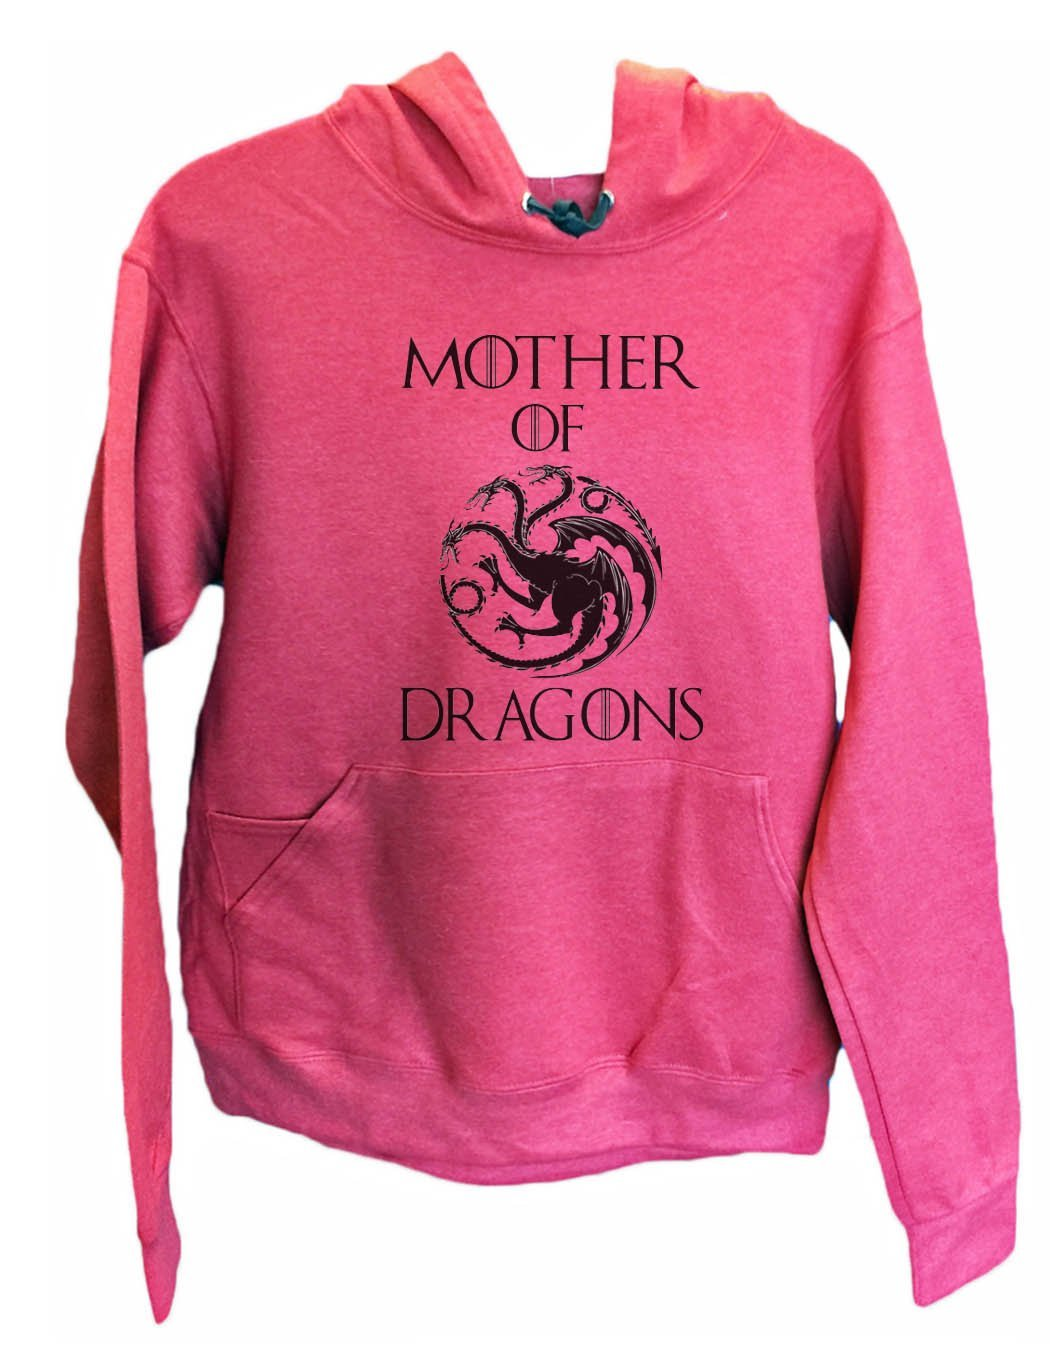 UNISEX HOODIE - Mother Of Dragons - FUNNY MENS AND WOMENS HOODED SWEATSHIRTS - 2775 Funny Shirt